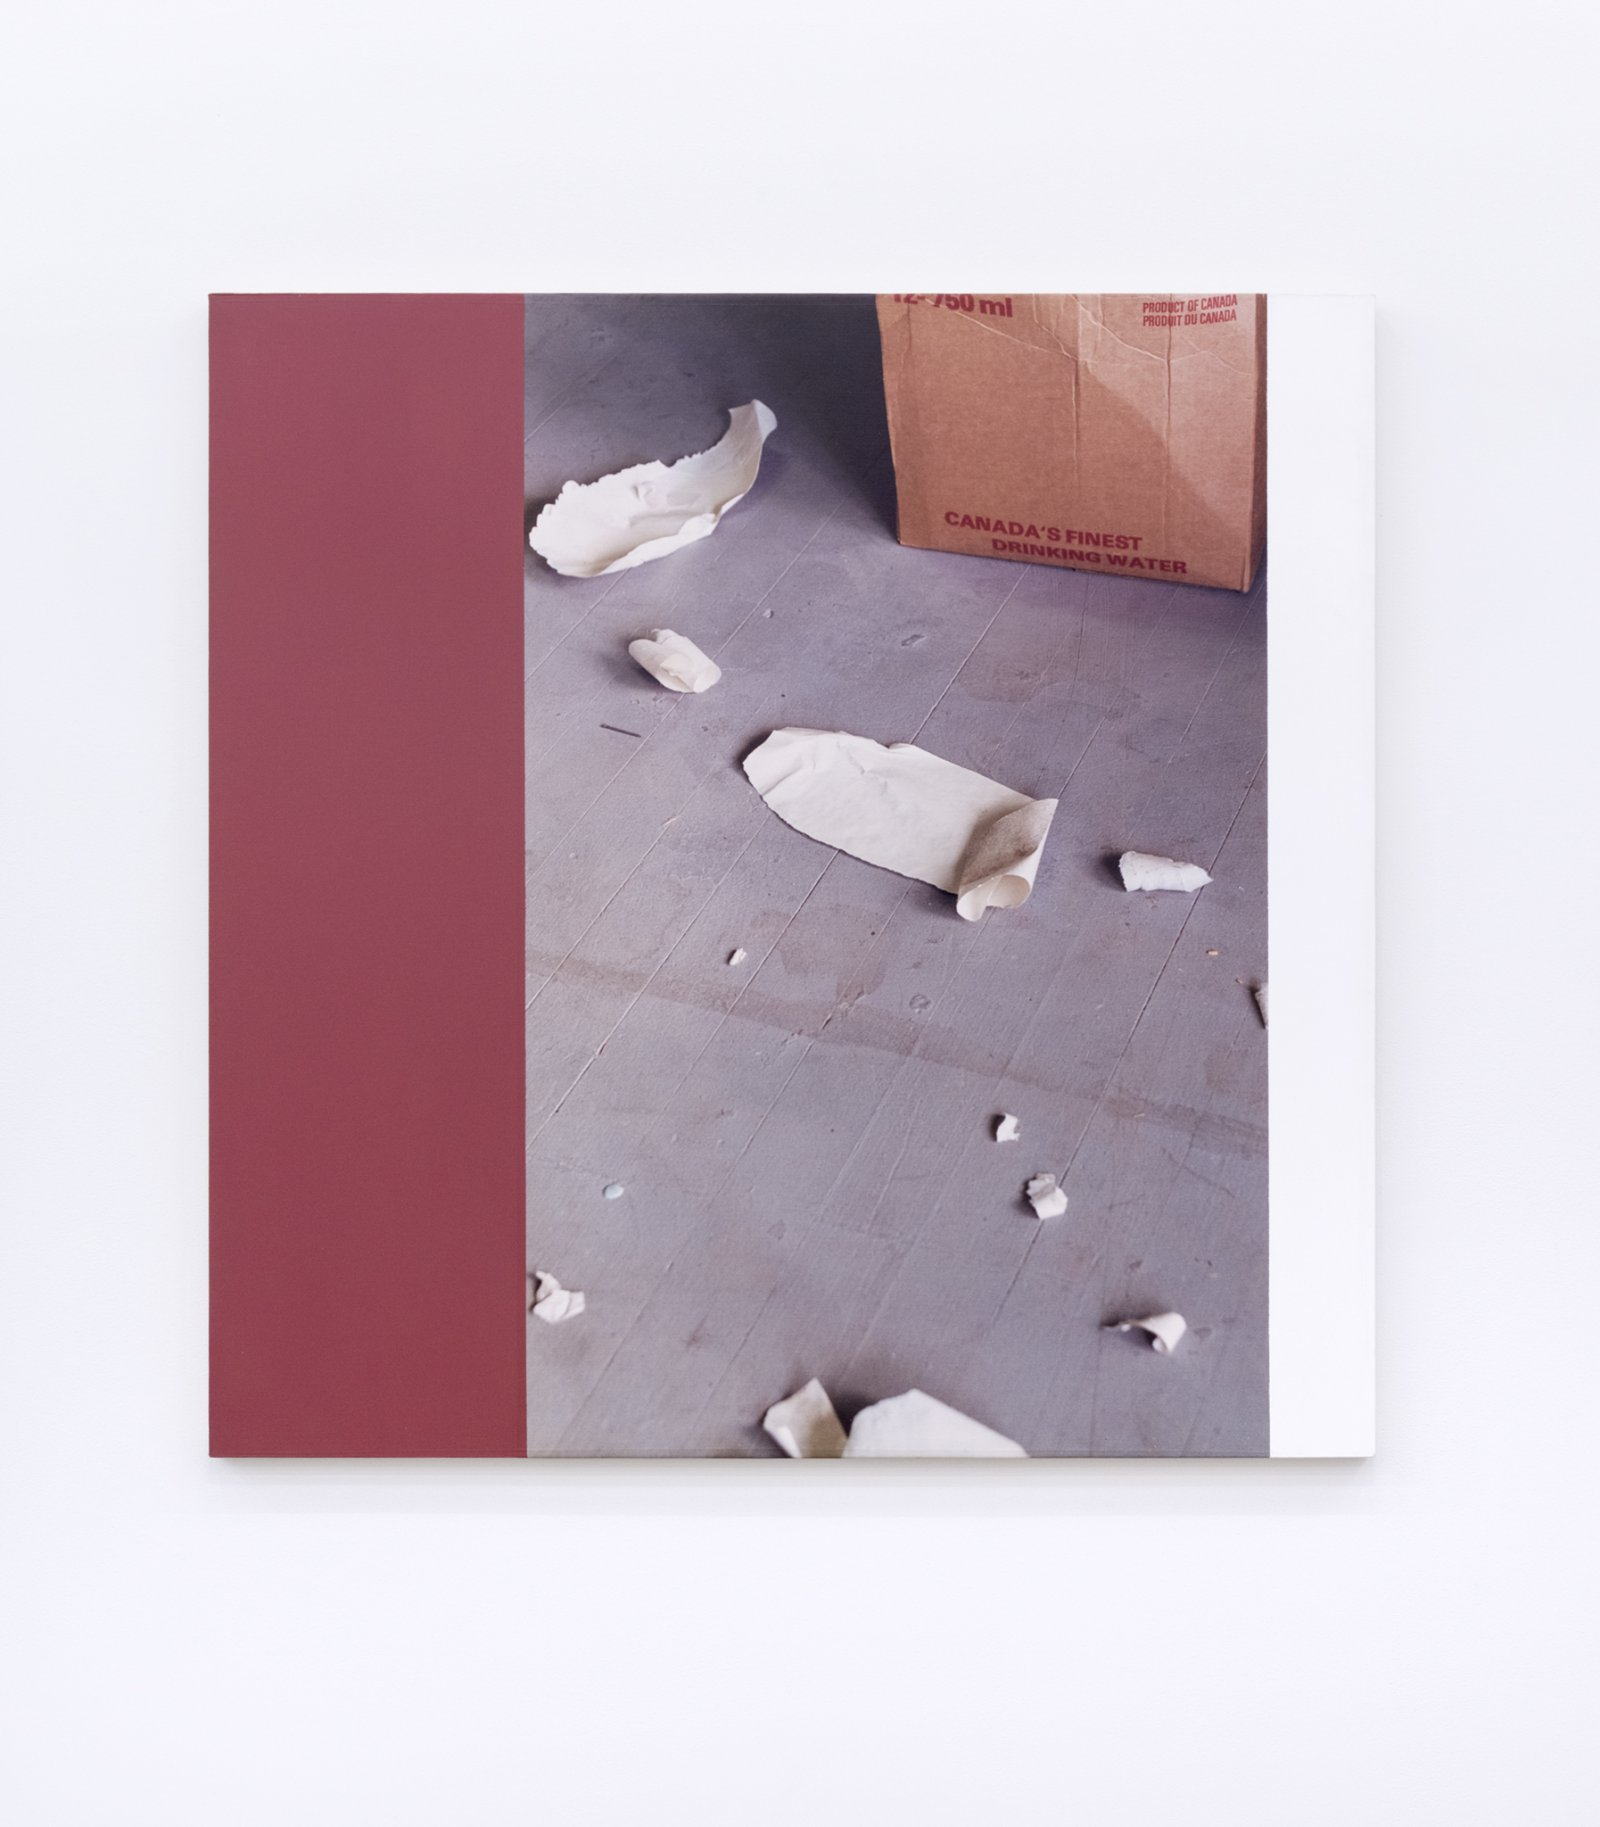 Ian Wallace, Messes from the floor of the studio of Elspeth Pratt VI, 1989, photolaminate and acrylic on canvas, 48 x 48 in. (122 x 122 cm) by Ian Wallace